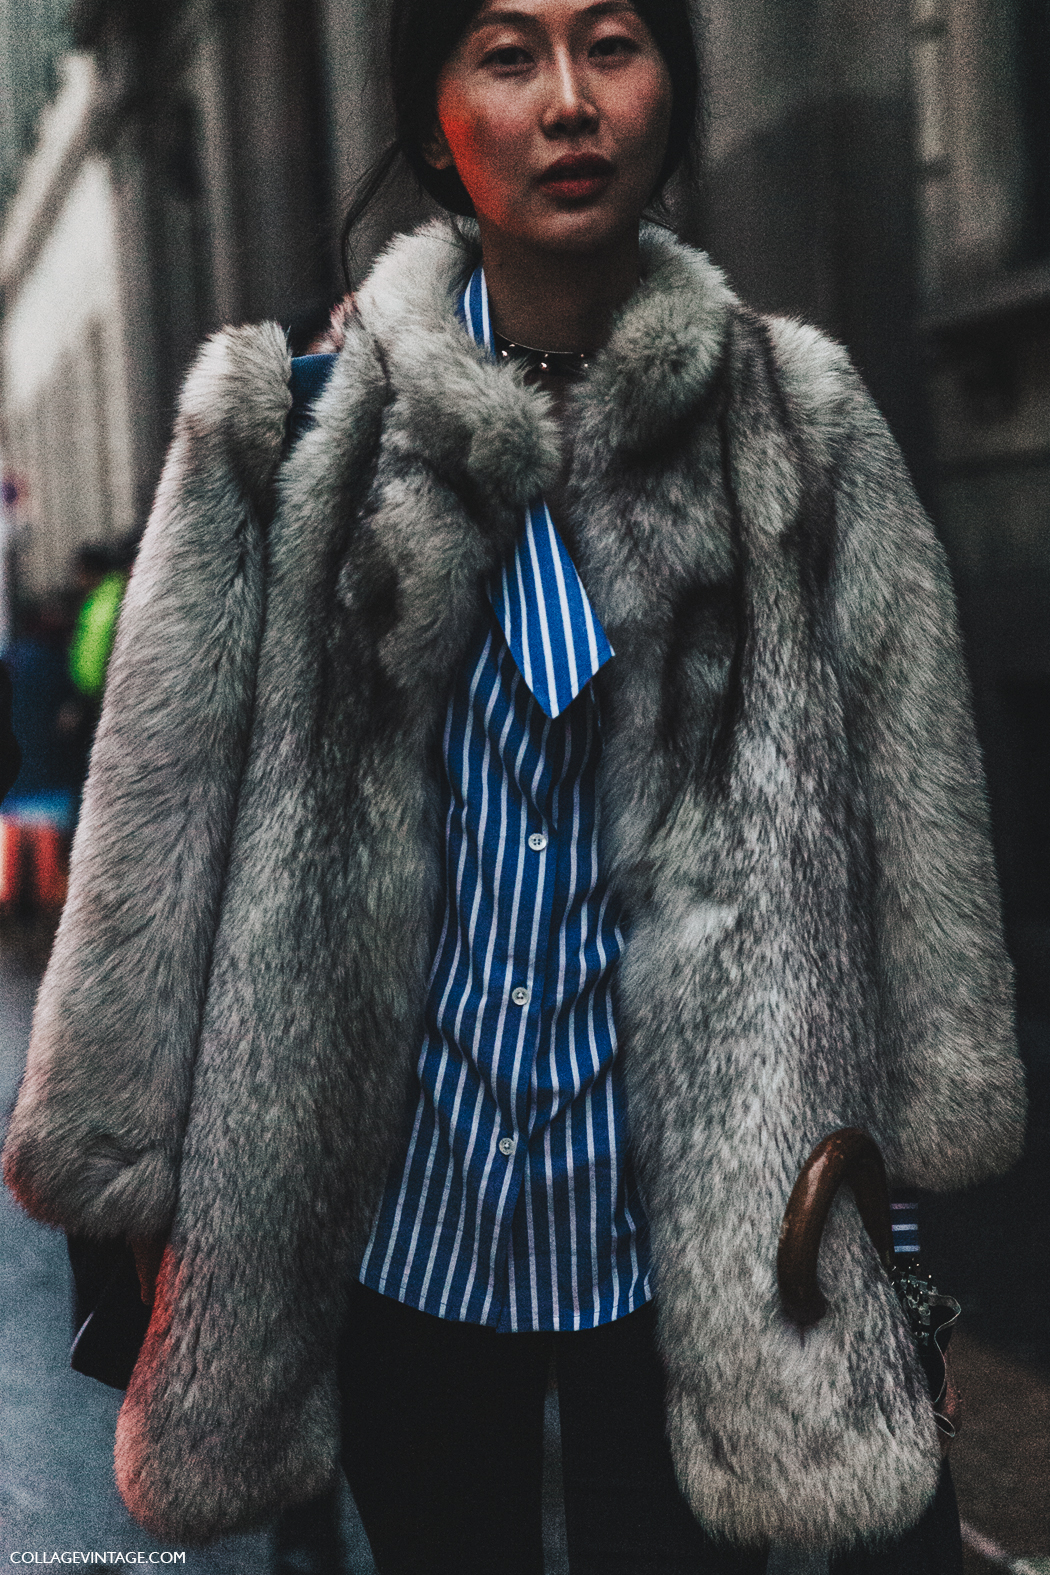 Milan_Fashion_Week_Fall_16-MFW-Street_Style-Collage_Vintage-Striped_Blouse-Fur_Coat-